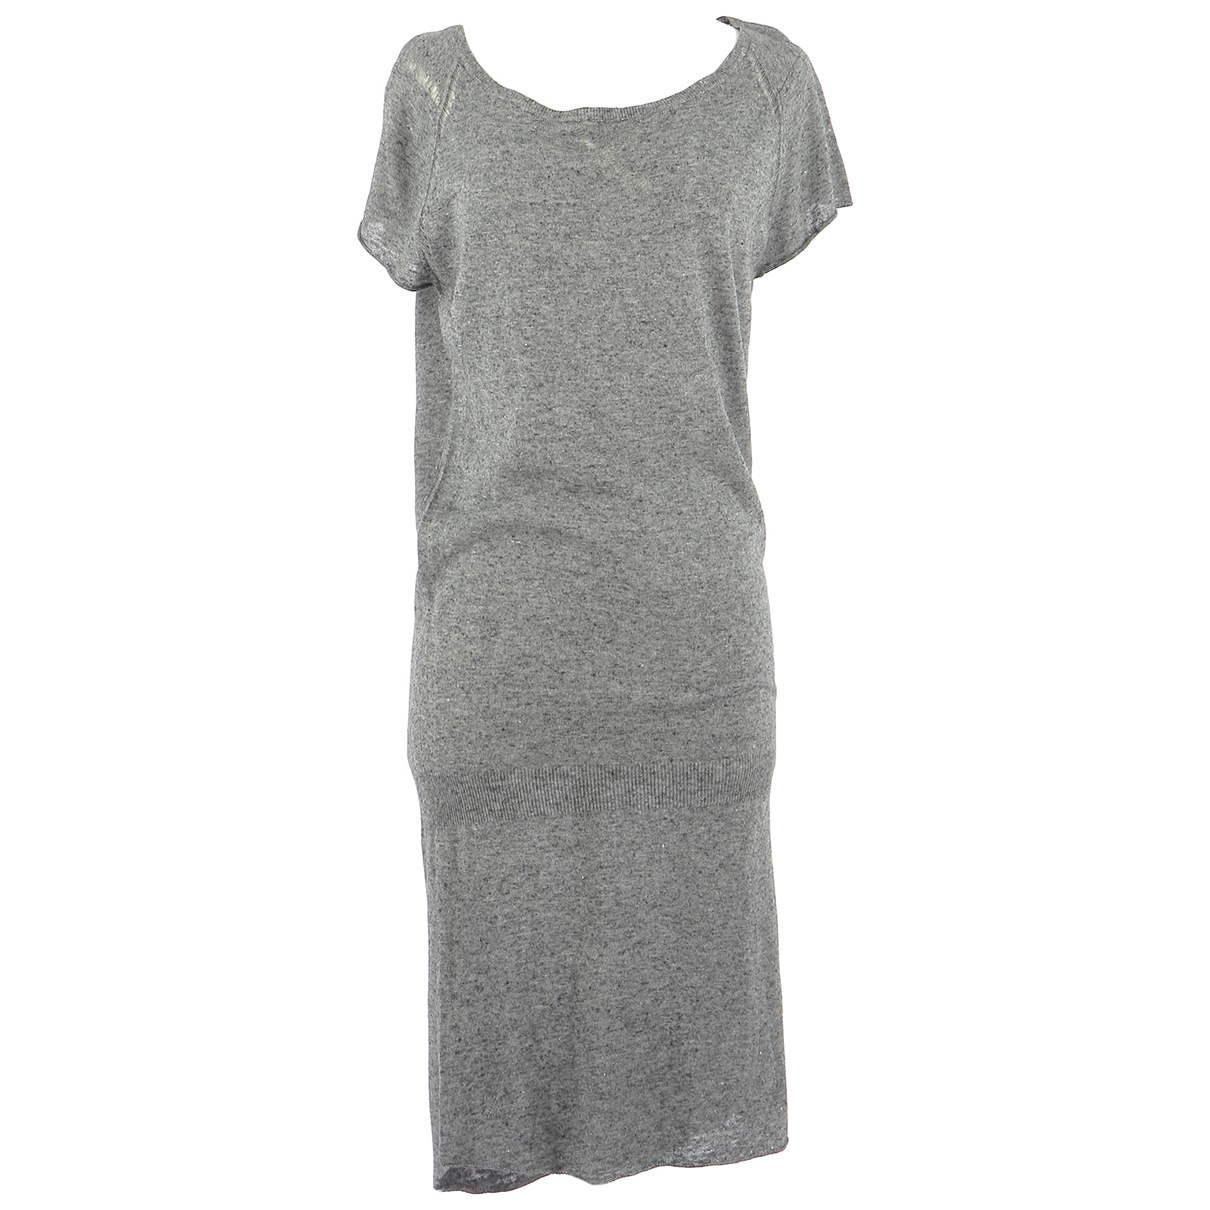 Zadig & Voltaire \N Grey dress for Women 38 FR